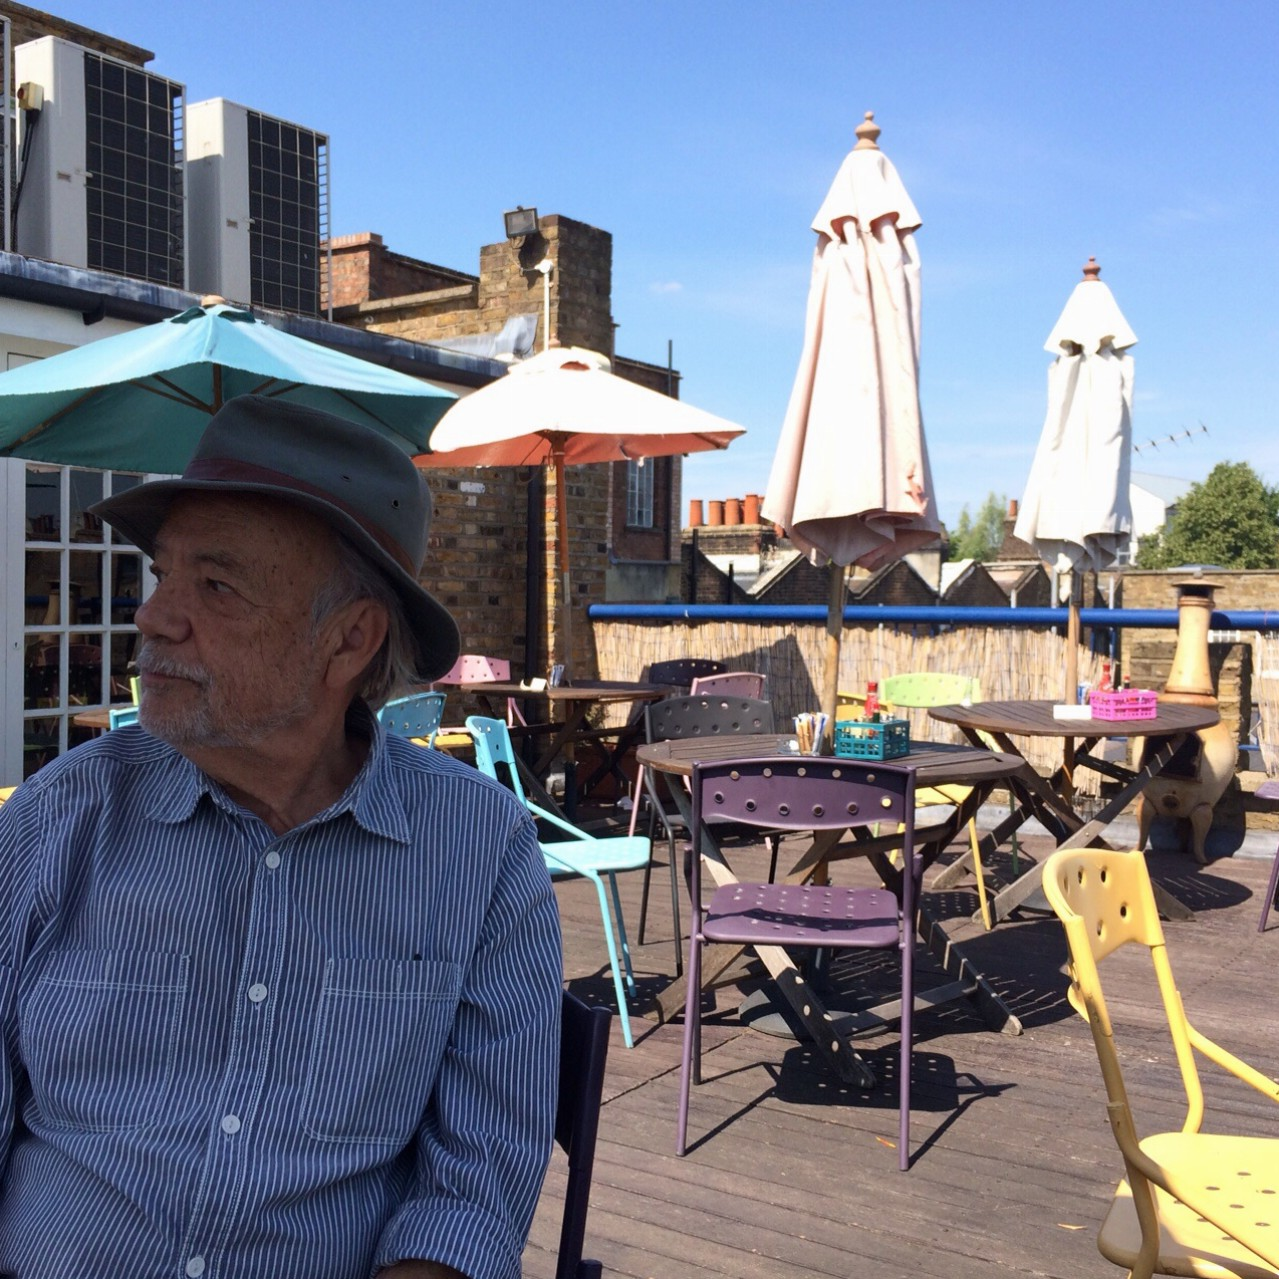 Rooftop cafe of cool antique mart in Lisson Grove